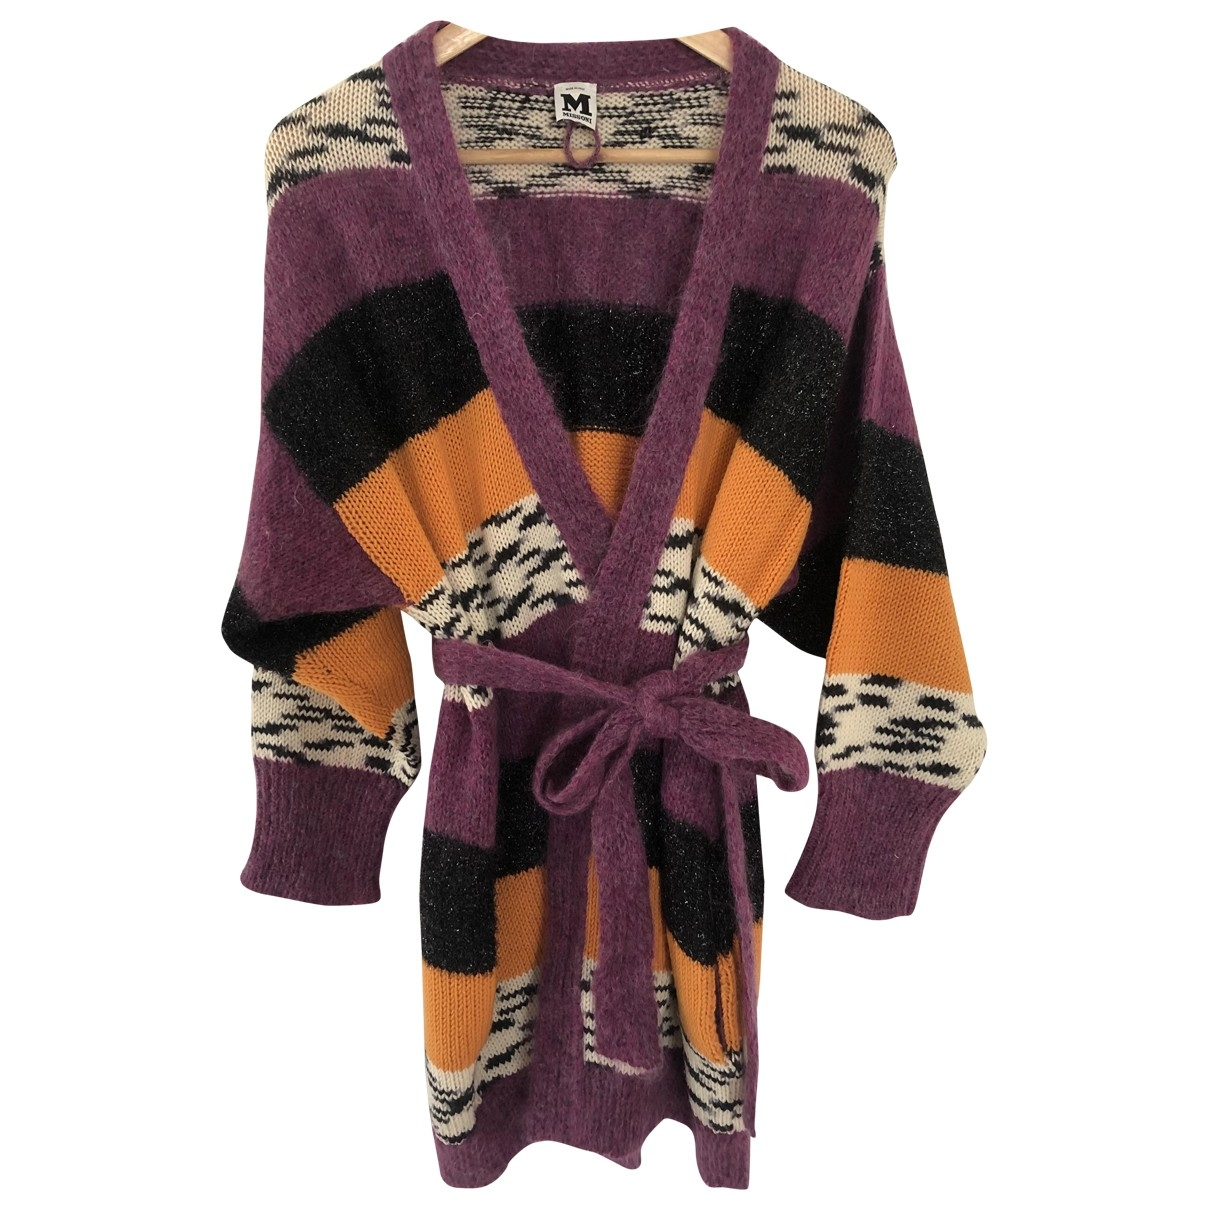 M Missoni \N Pullover in  Lila Wolle